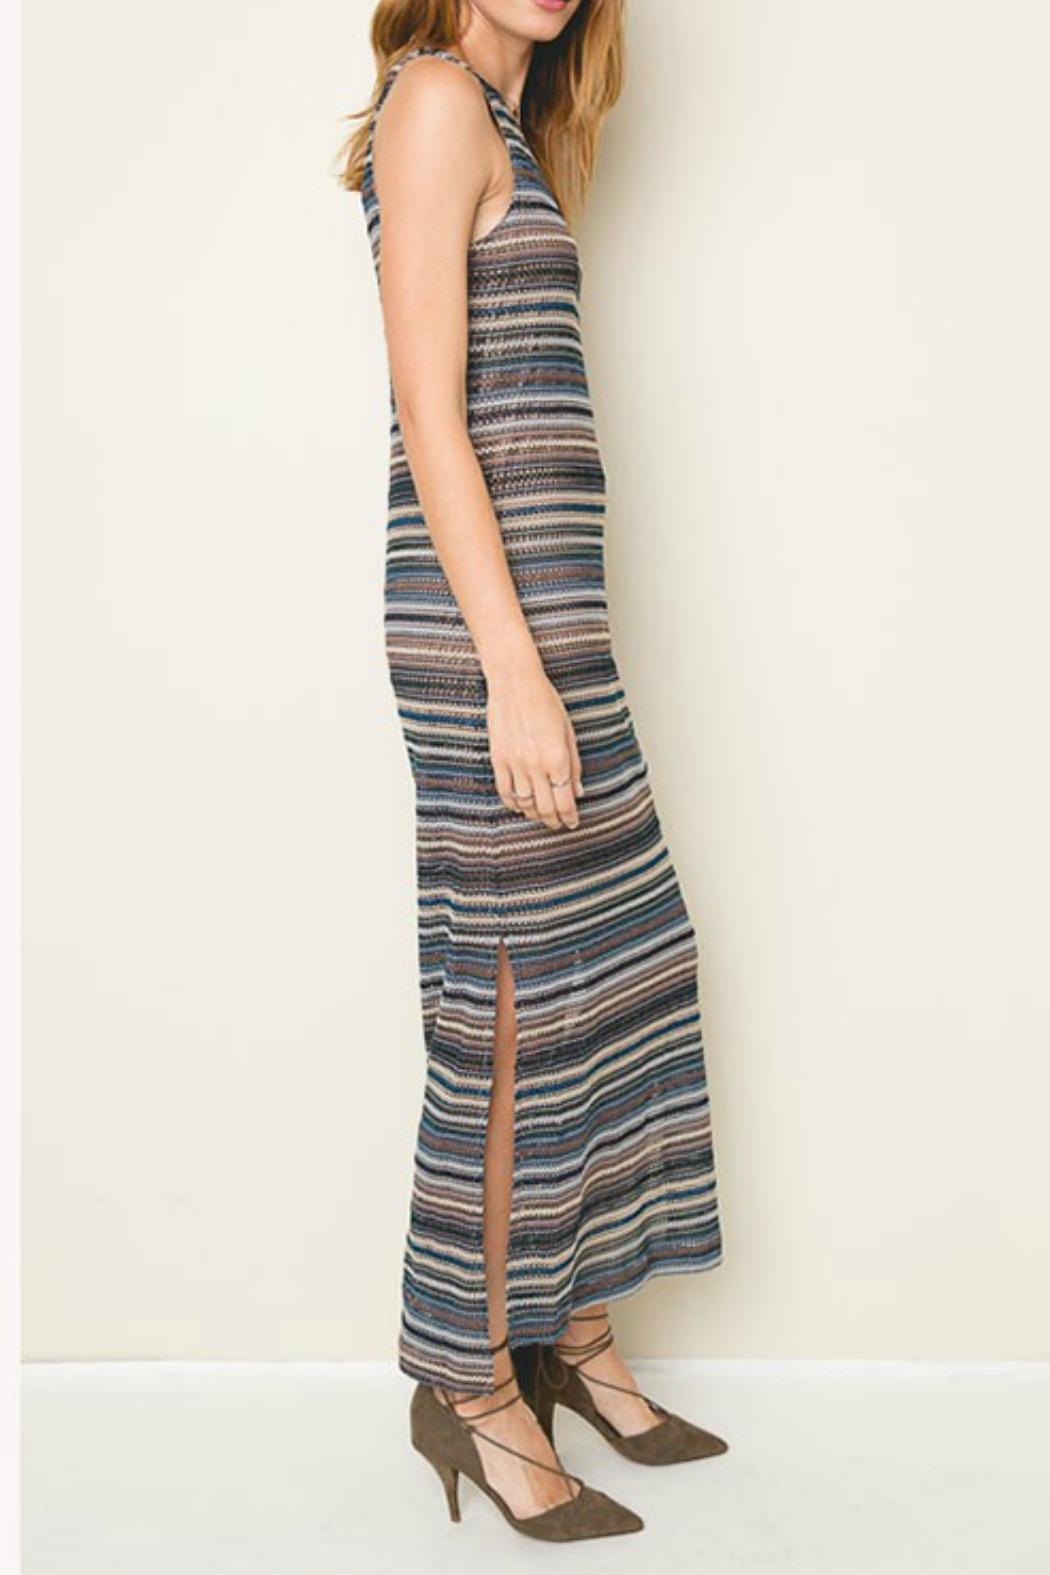 Hayden Los Angeles Sail Away Knit-Maxi - Front Full Image